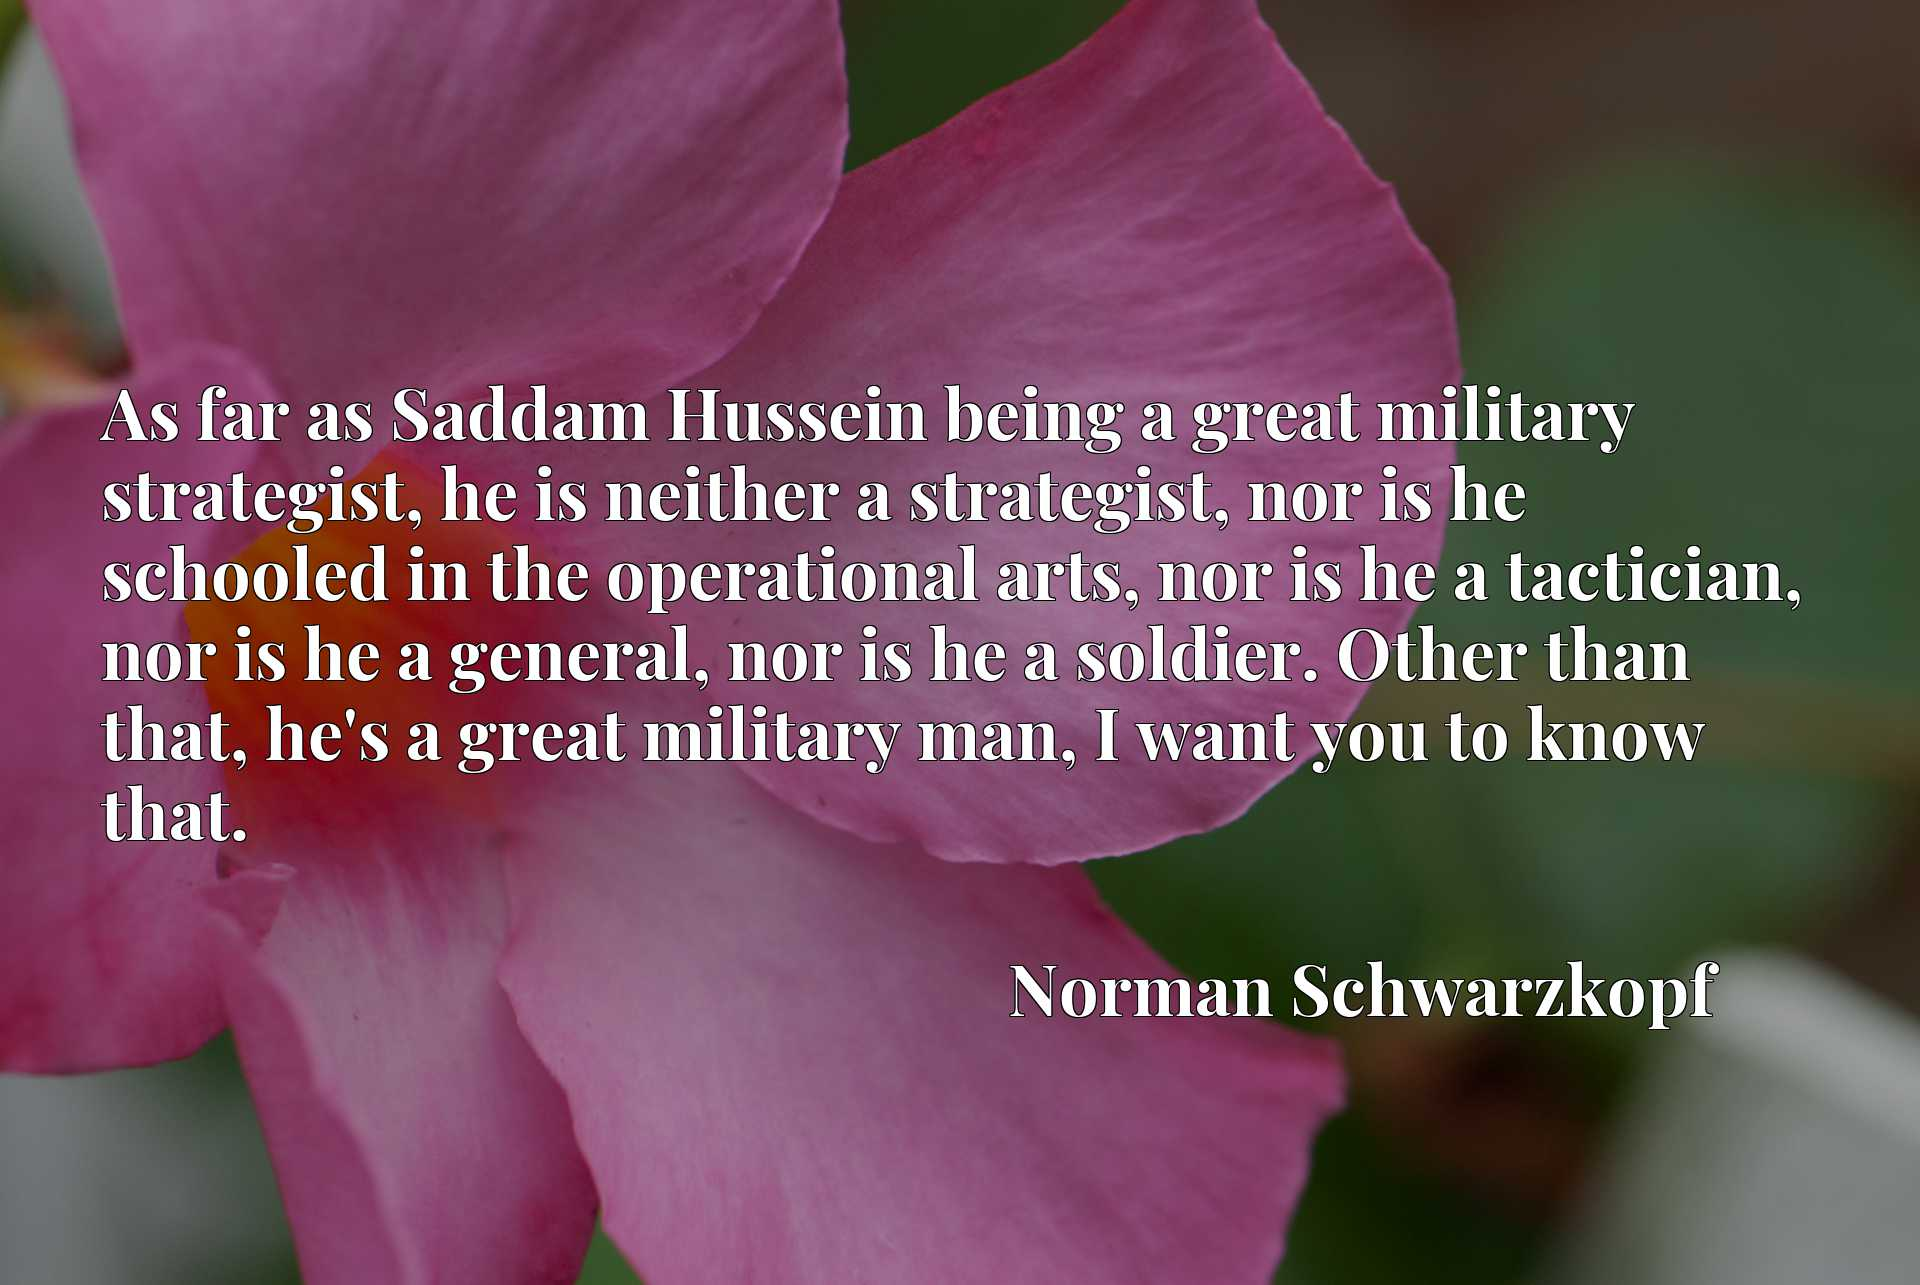 As far as Saddam Hussein being a great military strategist, he is neither a strategist, nor is he schooled in the operational arts, nor is he a tactician, nor is he a general, nor is he a soldier. Other than that, he's a great military man, I want you to know that.